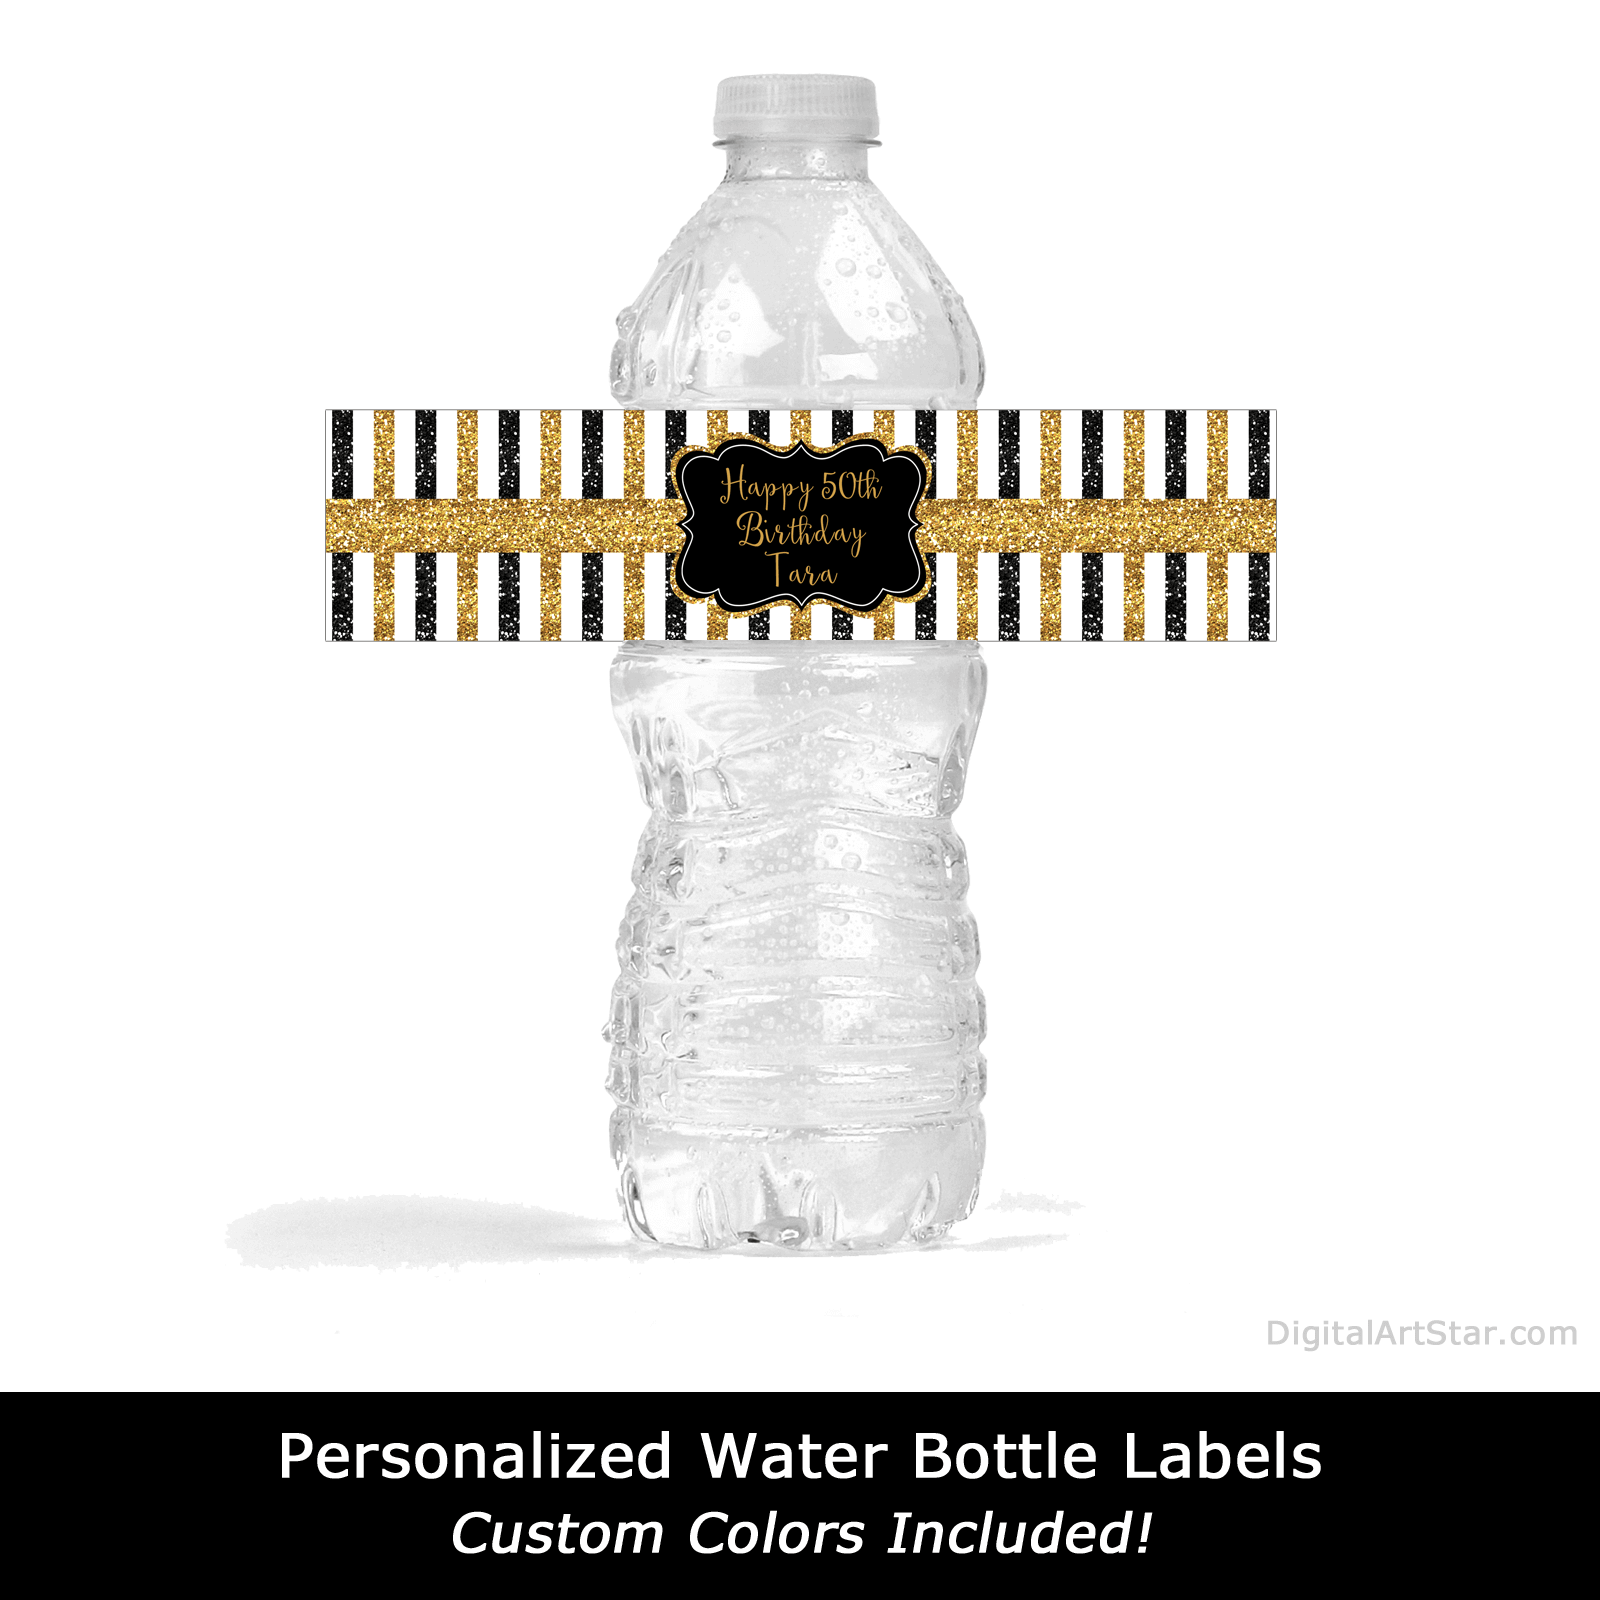 Personalized Water Bottle Labels Black and Gold